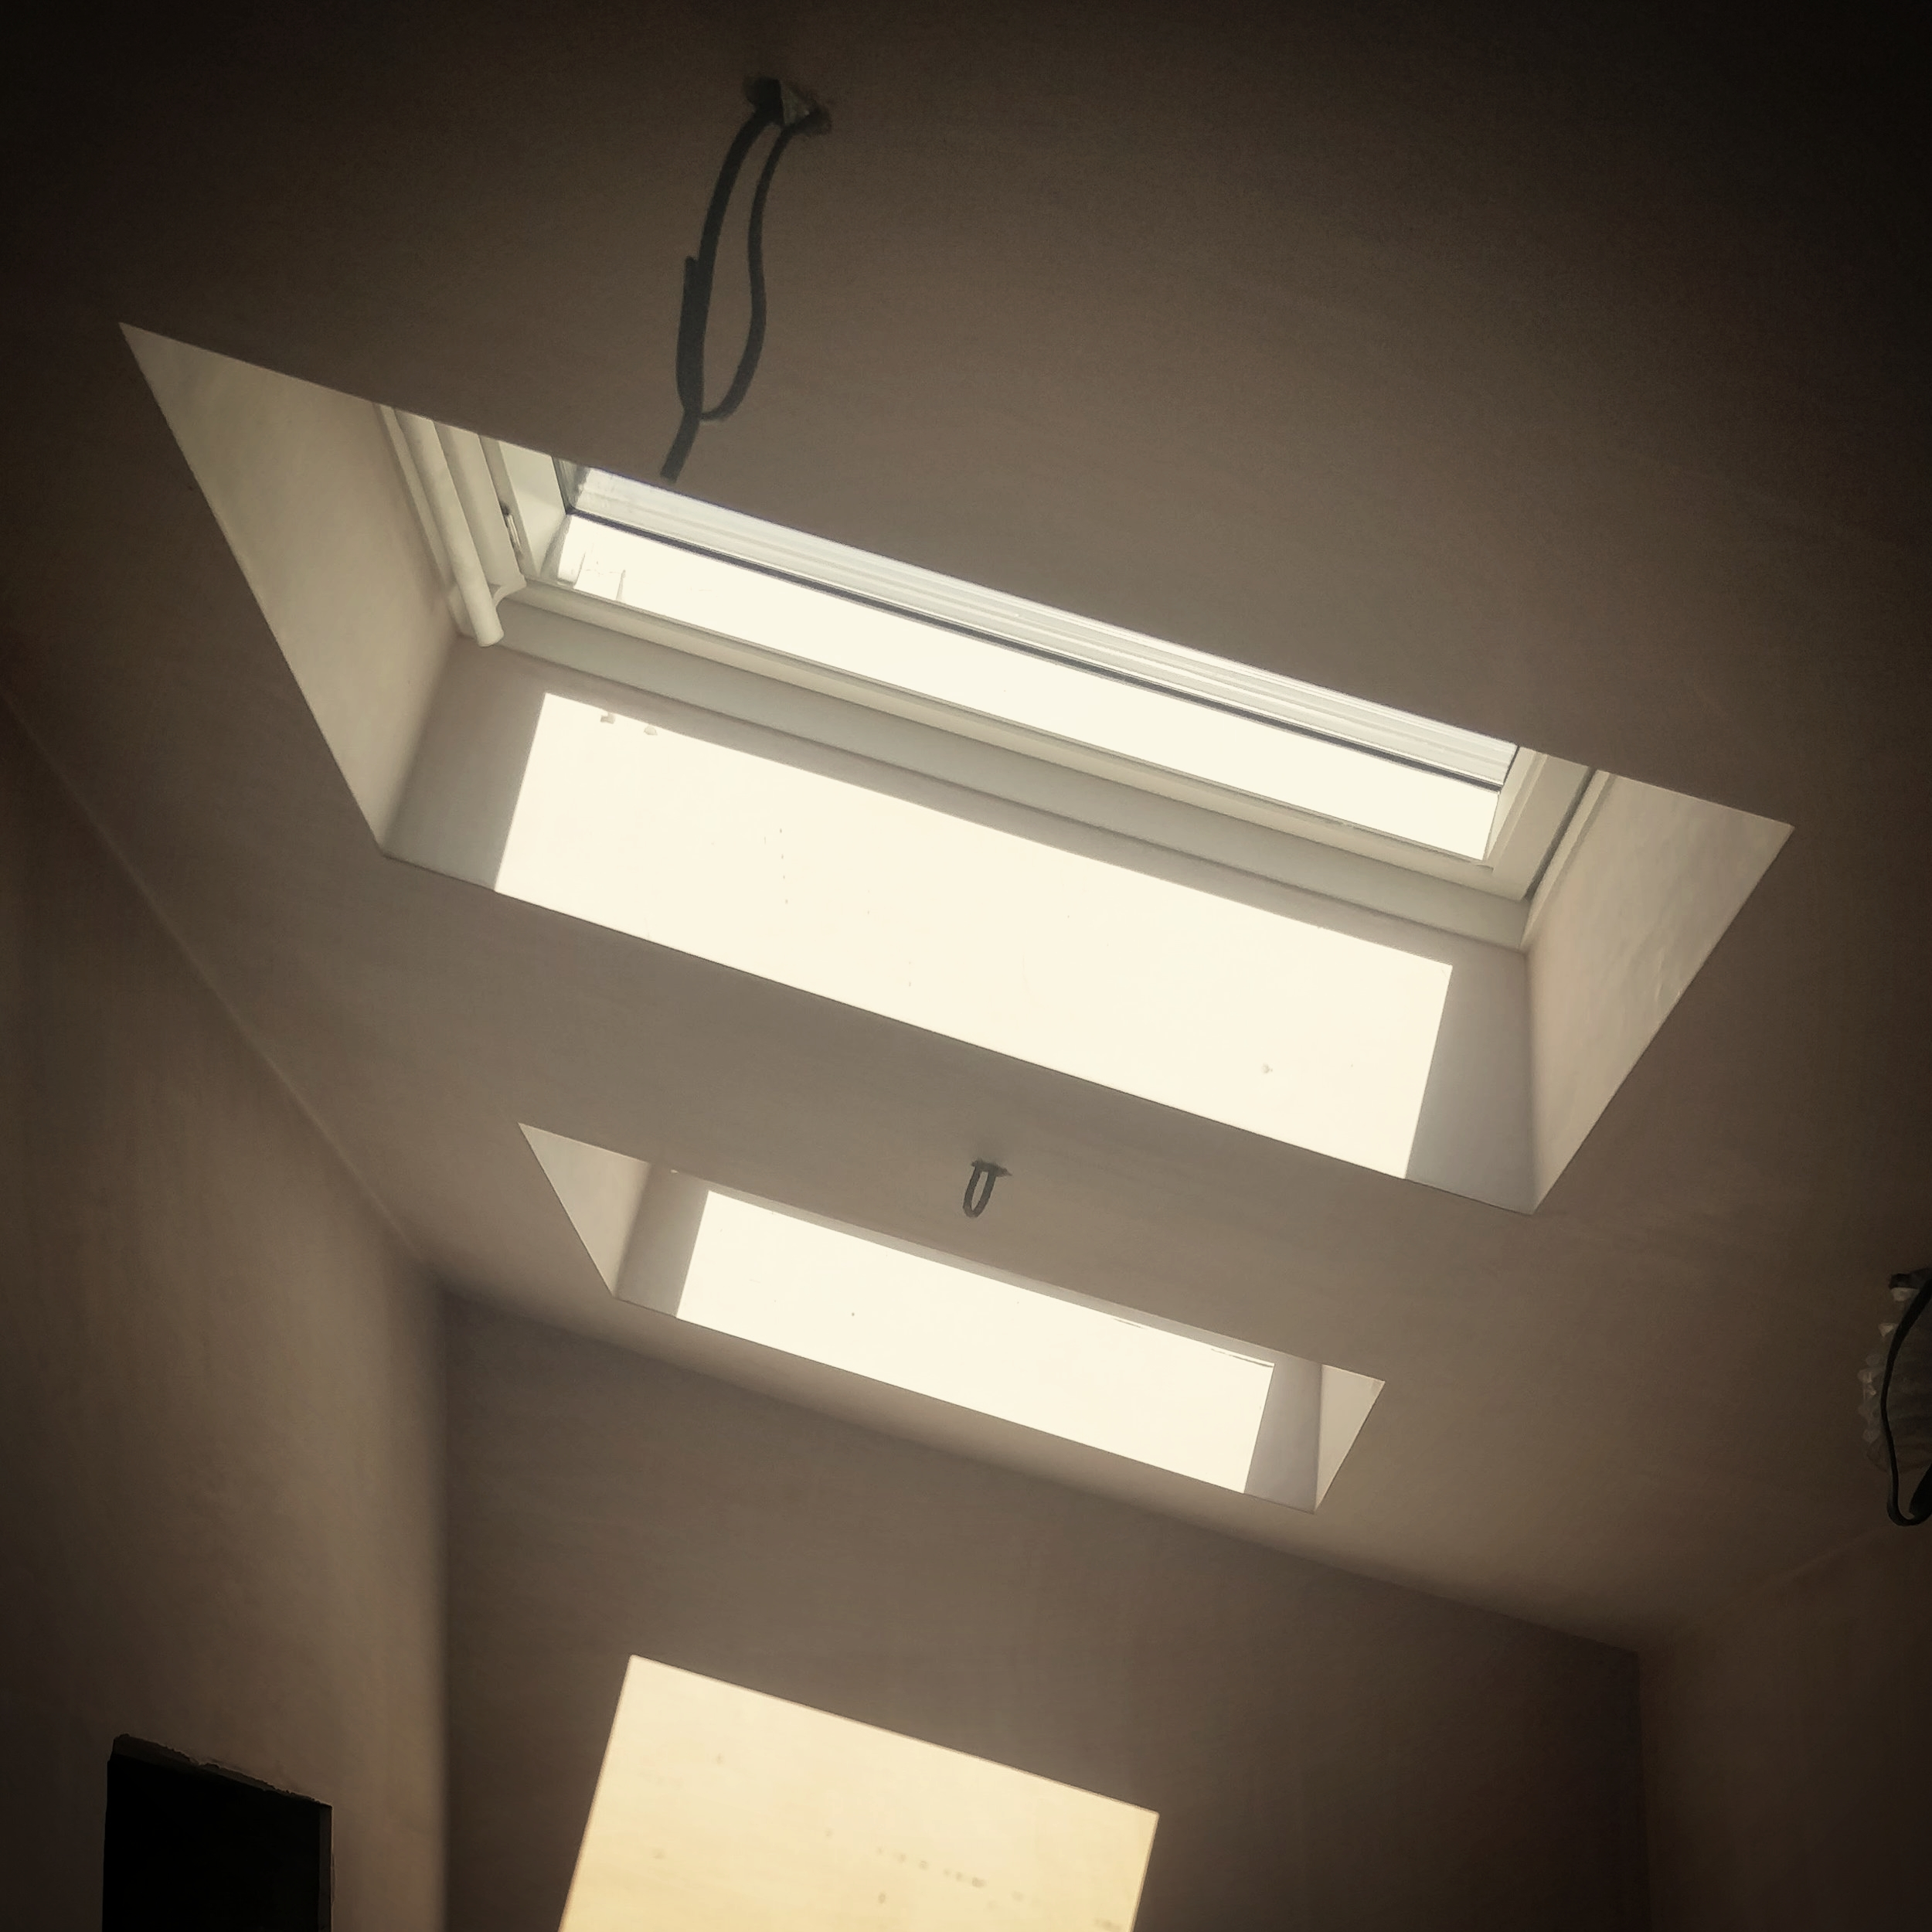 Loft Conversion      - Create more useable space in a house with a loft conversion.If you're simply converting it to living spaces then planning permission is not needed.If you're extending the roof space, then planning permission does apply.Please check your local authority for guidelines.